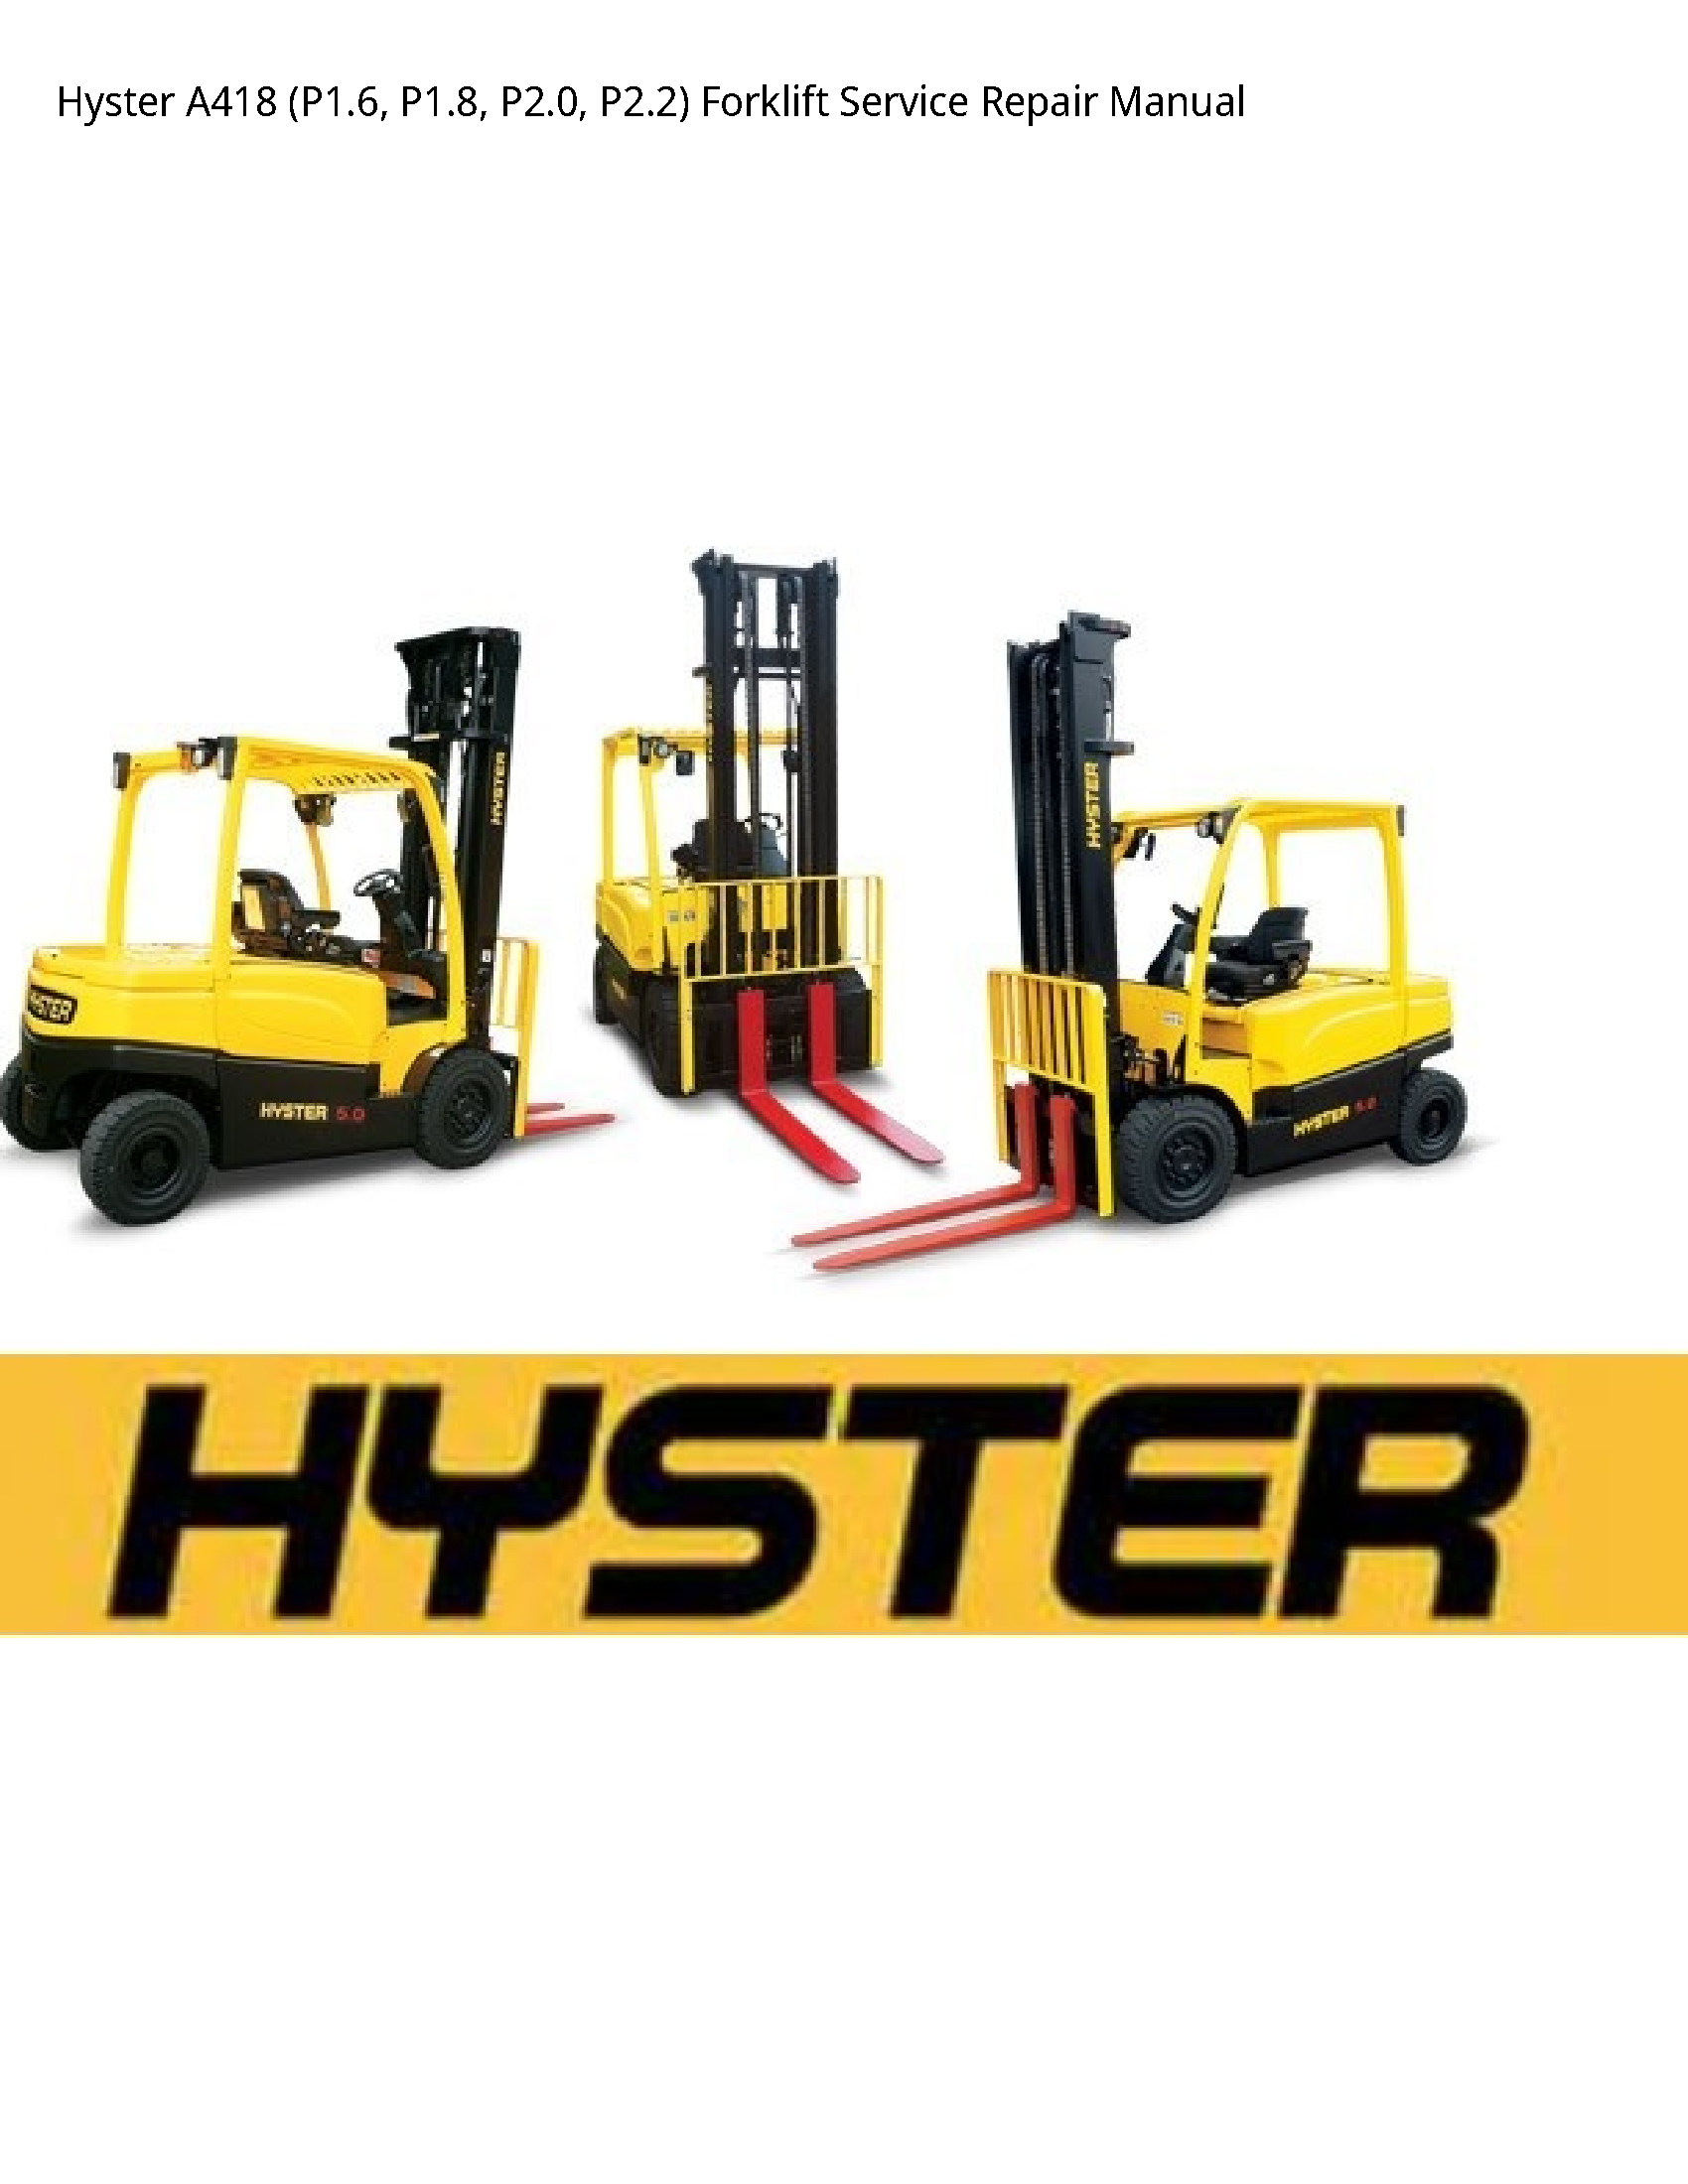 Hyster A418 Forklift manual